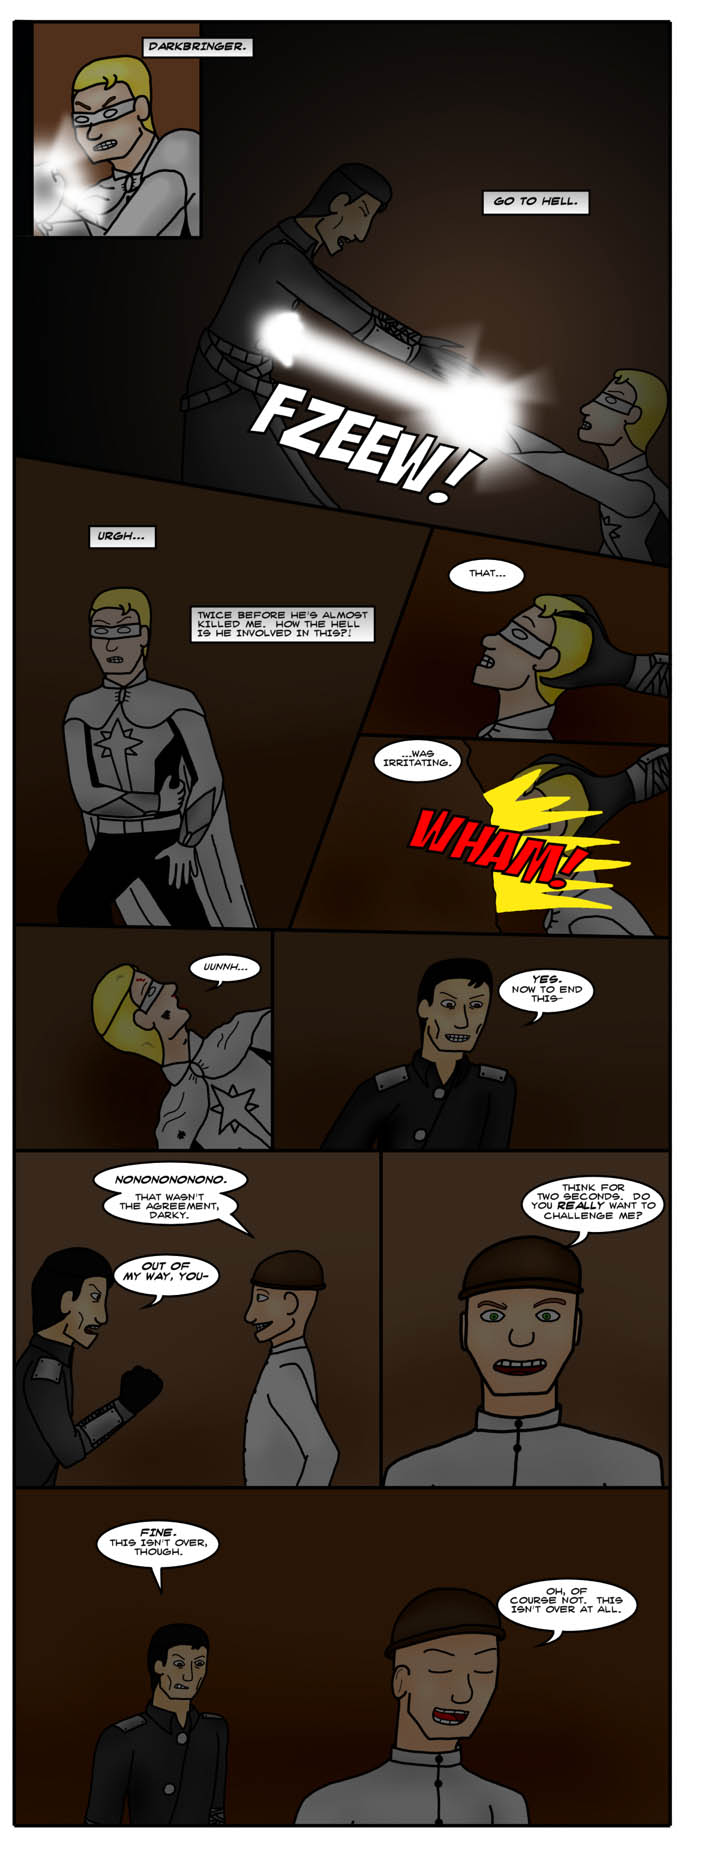 Crossoverlord - Chapter 5, Page 12